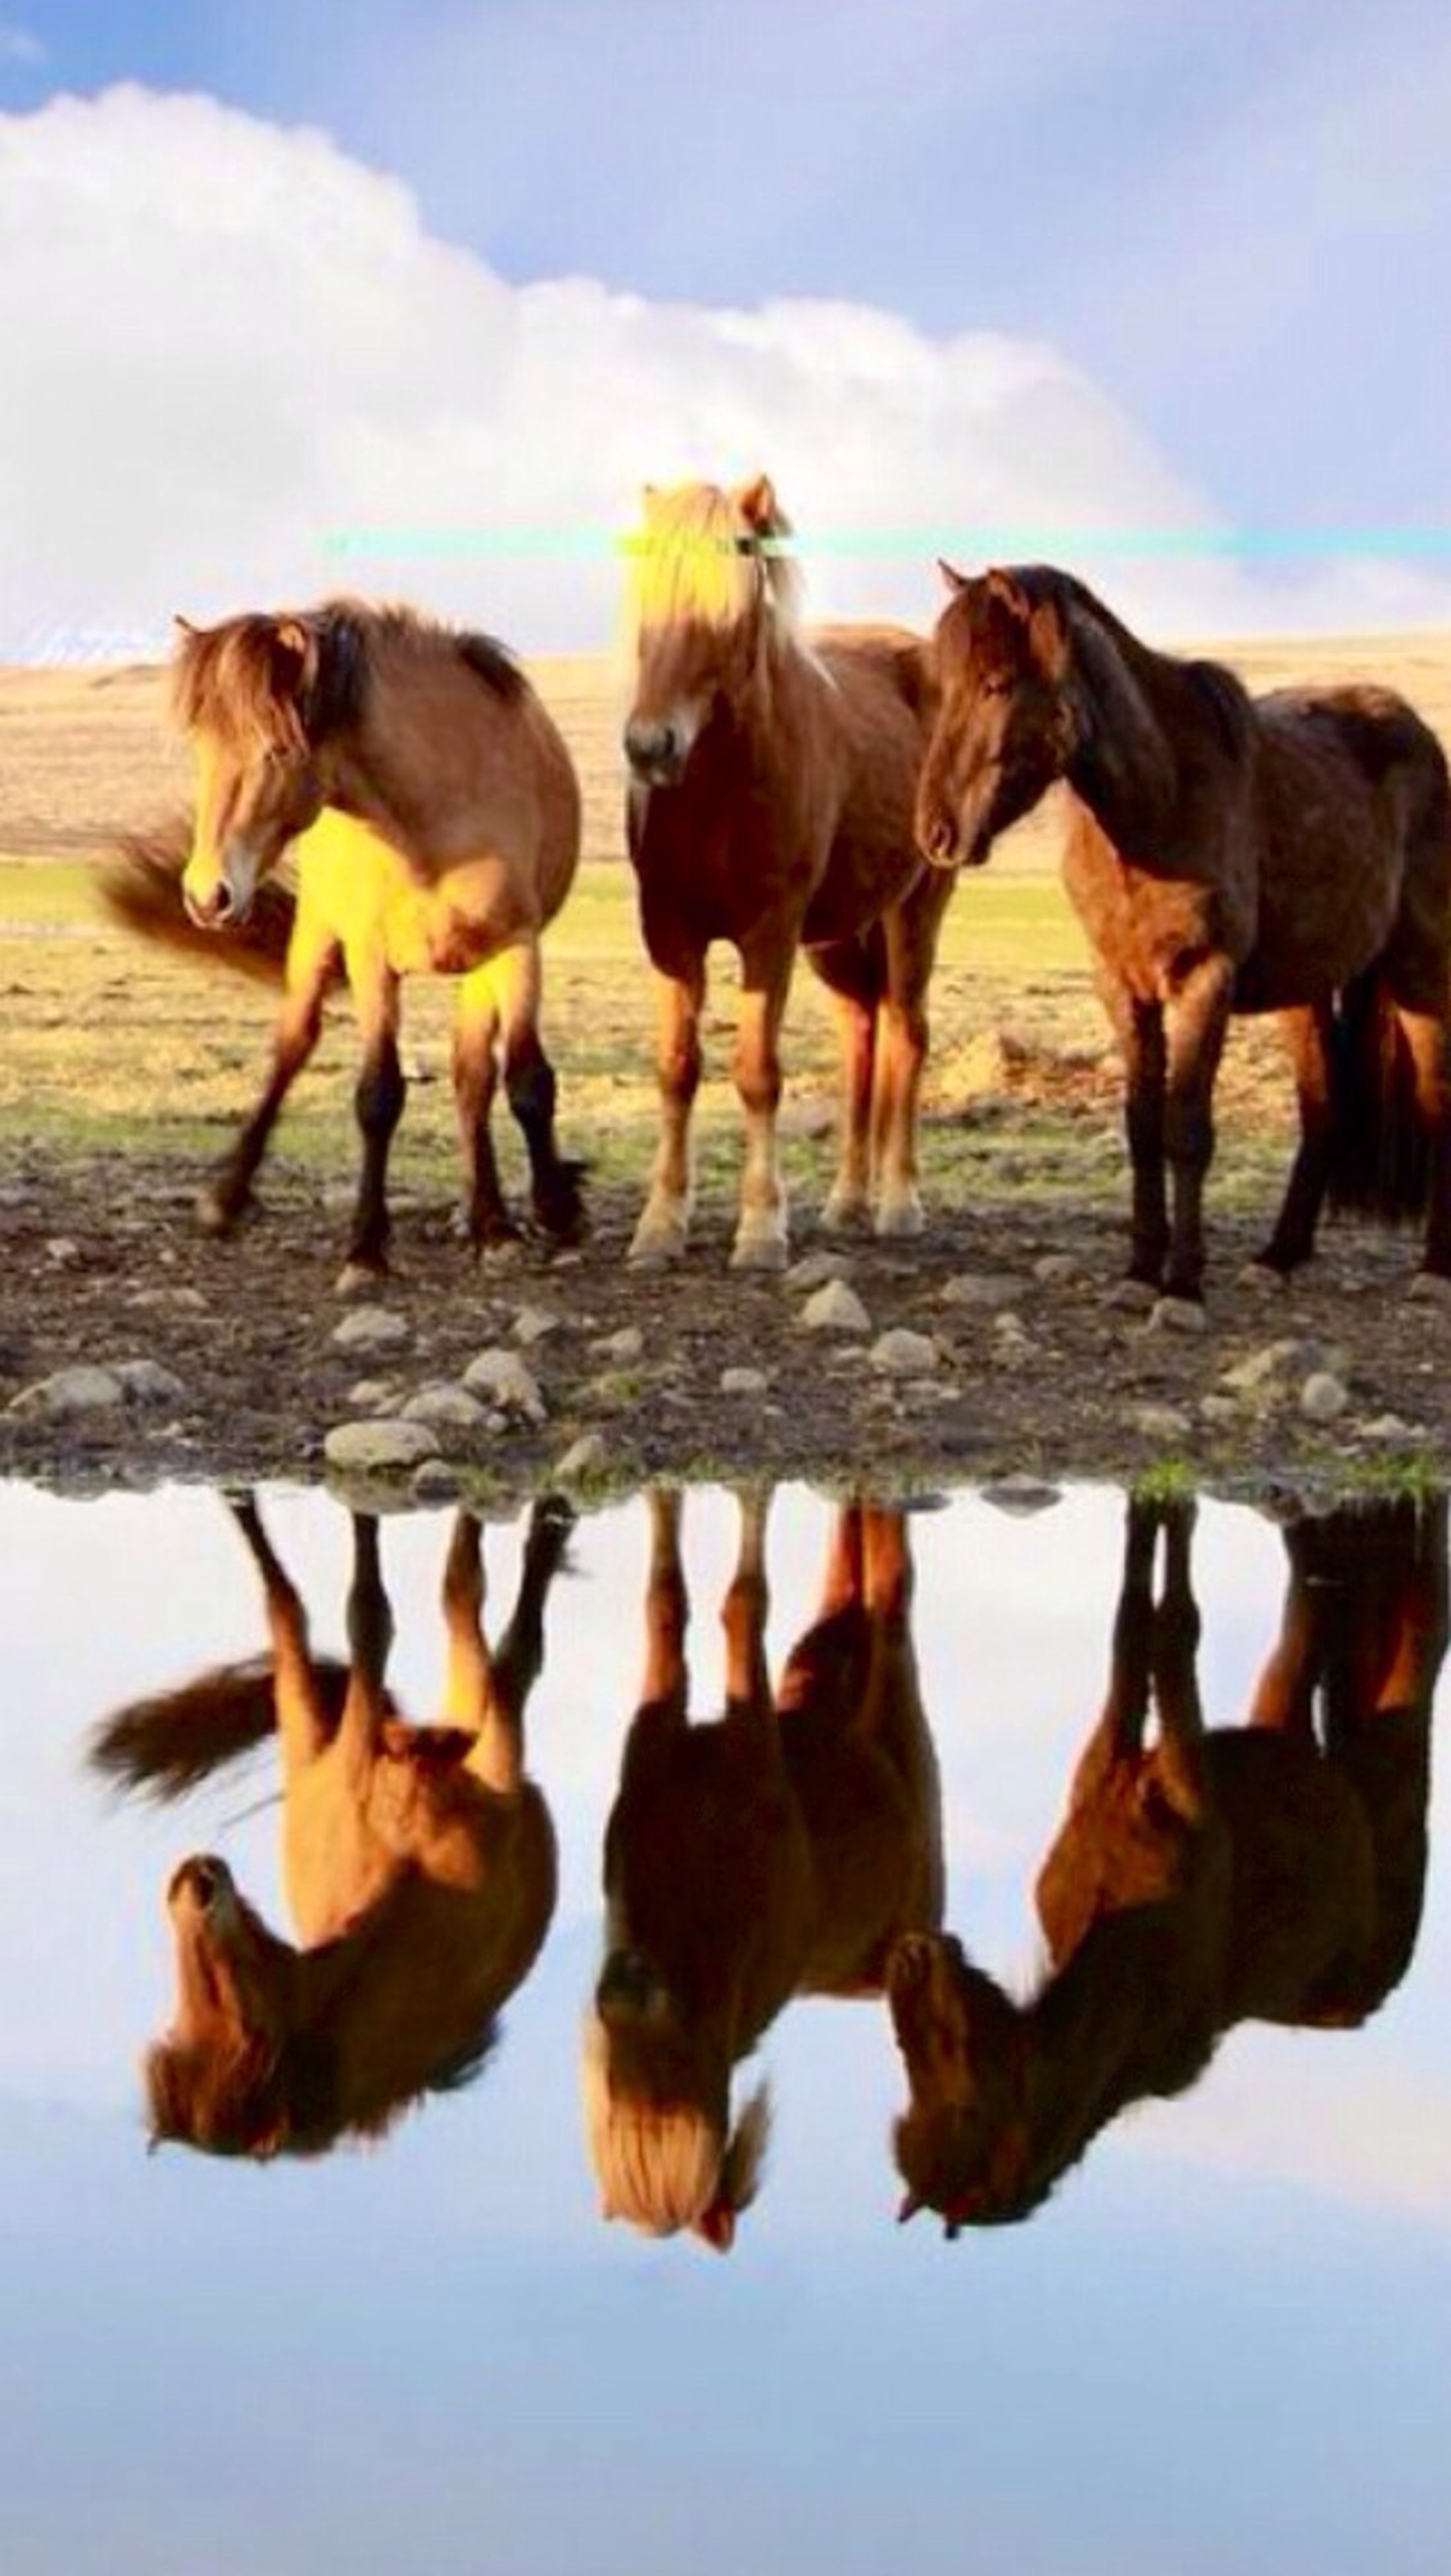 domestic animals, animal themes, mammal, horse, dog, pets, livestock, working animal, two animals, three animals, one animal, standing, full length, herbivorous, sky, nature, day, togetherness, water, outdoors